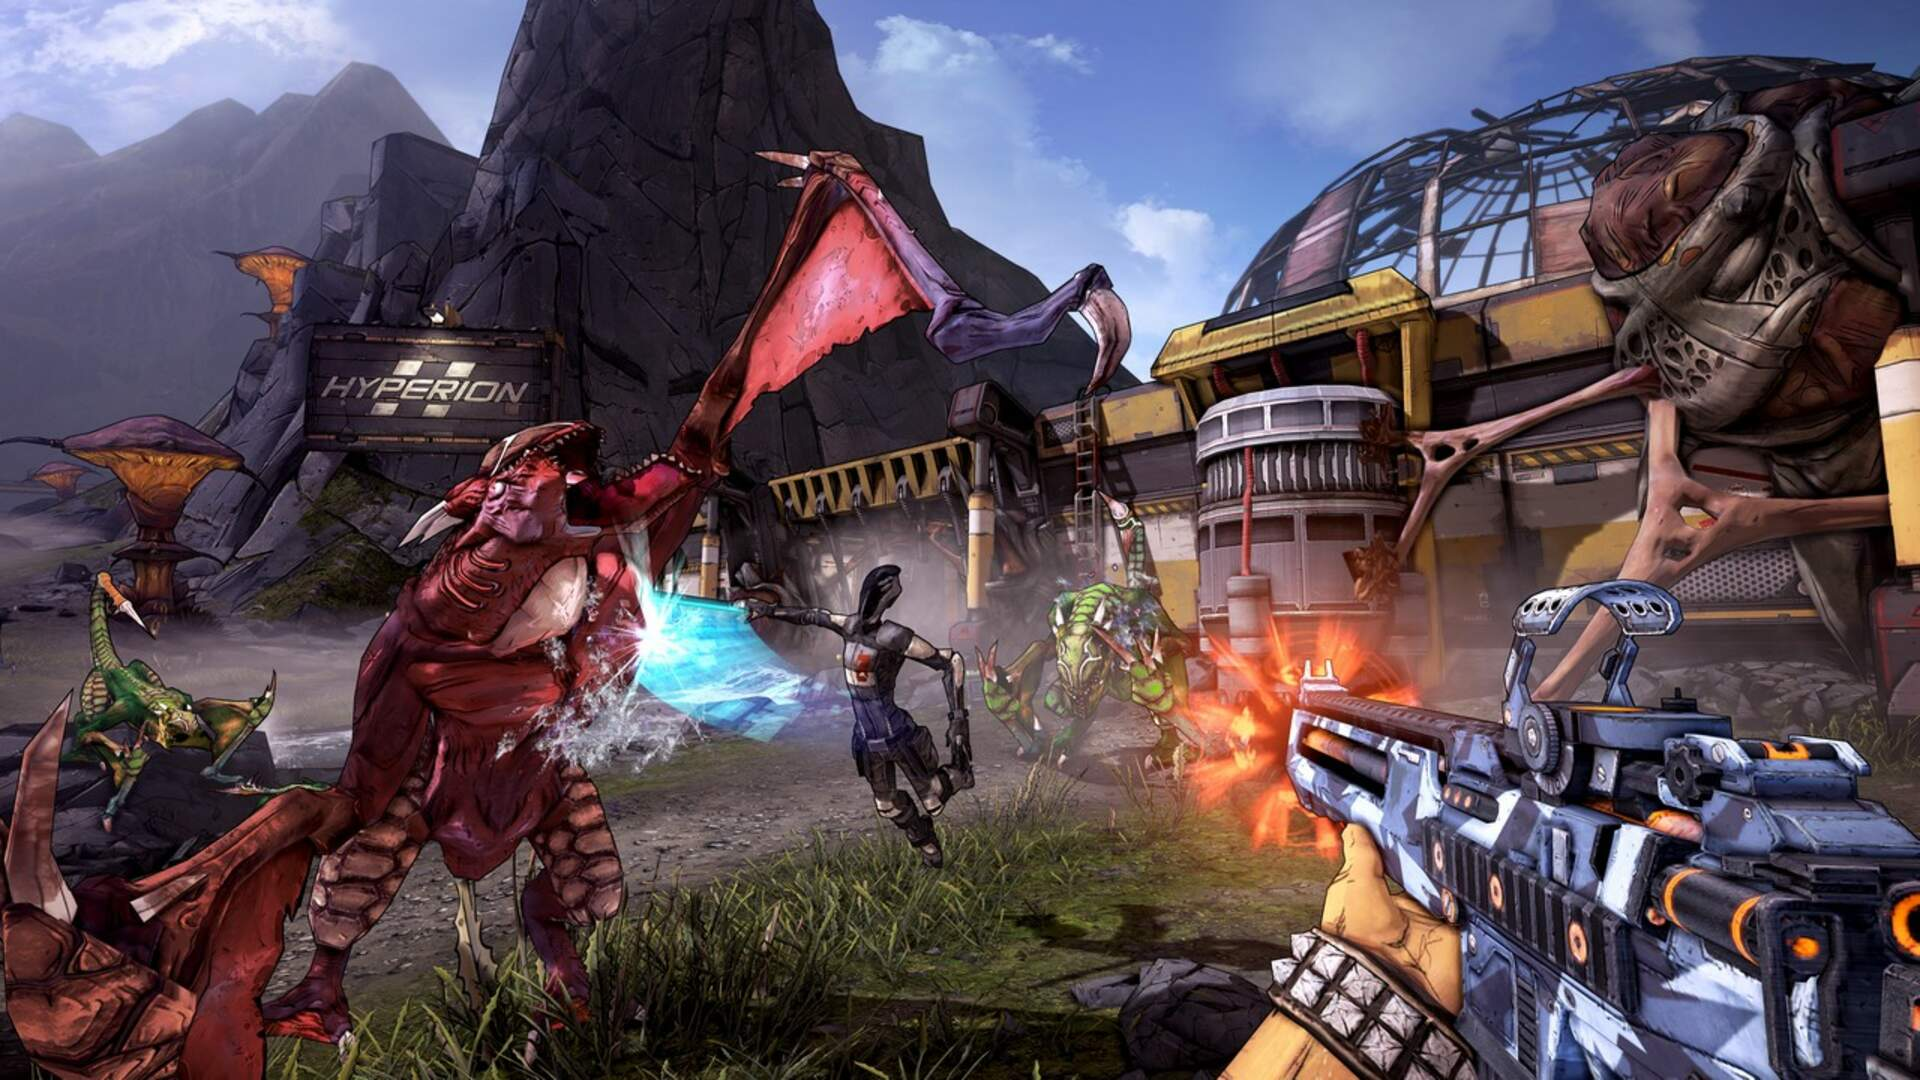 Borderlands 3 Looking More and More Likely to be Announced Next Month